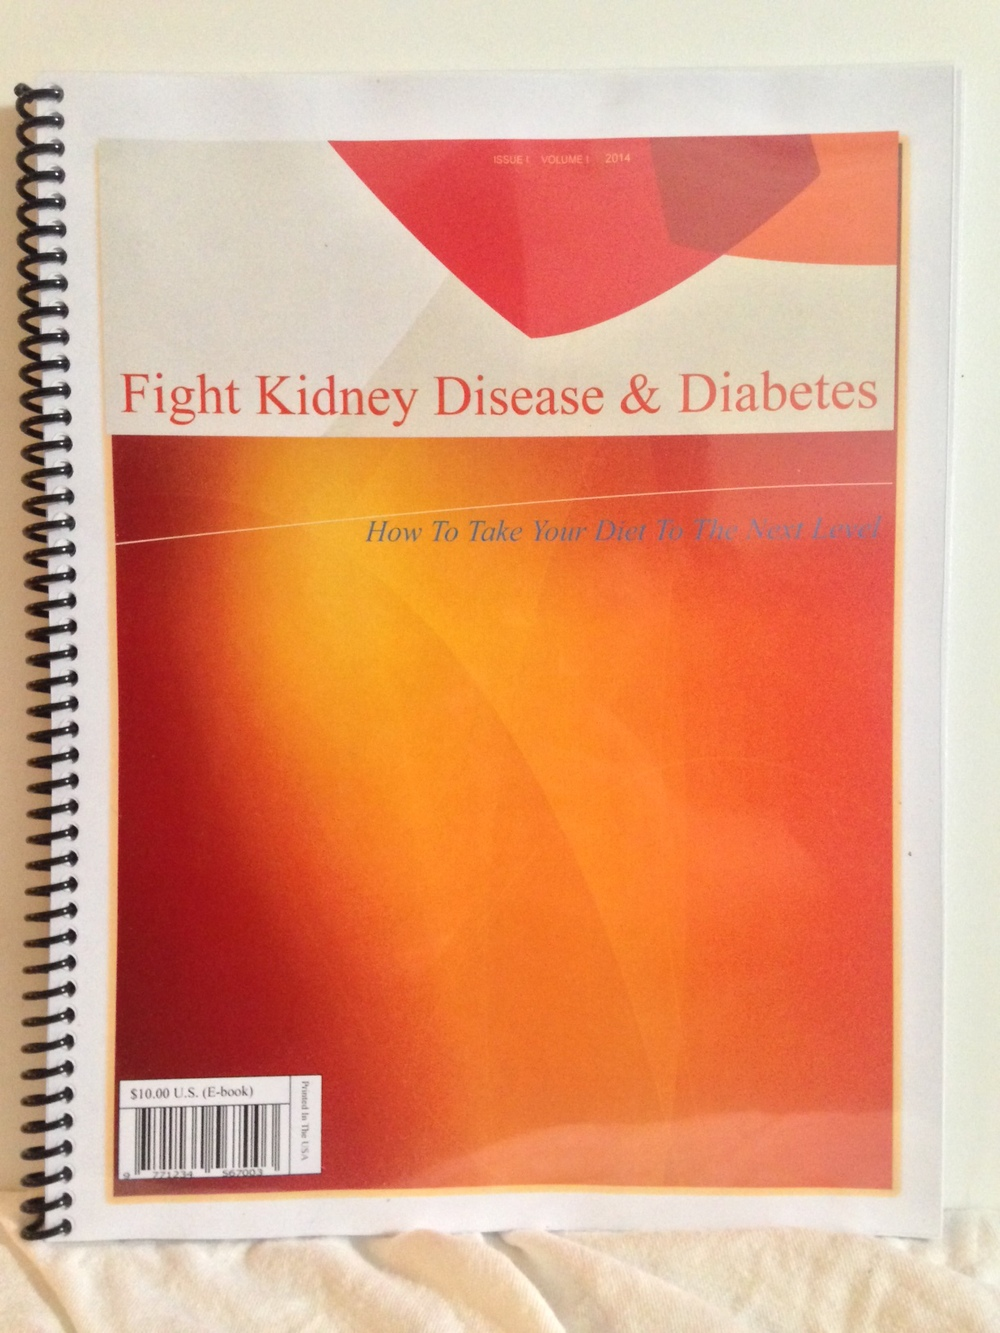 KIDNEYBUZZ.COM'S NEW DIET GUIDE FOR INDIVIDUALS SUFFERING WITH CHRONIC KIDNEY DISEASE  AND DIABETES CONTAINS MANY QUICK, EASY-TO-MAKE, AND TRULY DELICIOUS RECIPES.  YOU WILL ALSO GET CREATIVE LIFE MANAGEMENT TIPS WHILE SUPPORTING THE DAILY TAILORED NEWS COVERAGE BY PURCHASING THIS VOLUME FOR ONLY $10.00.CLICK HERE.